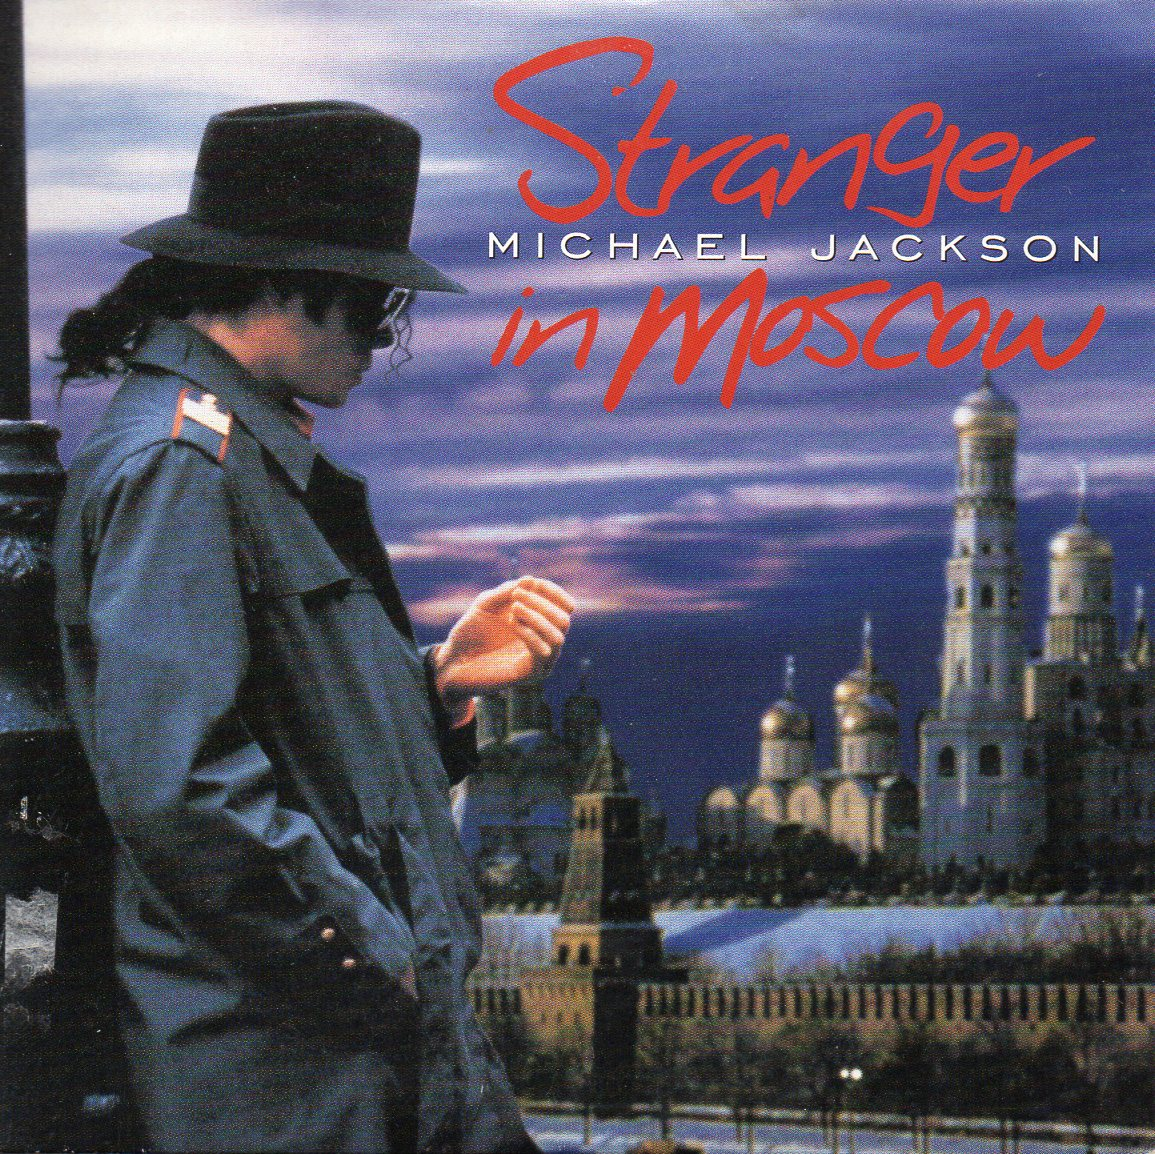 Michael JACKSON - Stranger In Moscow 3-track Card Sleeve